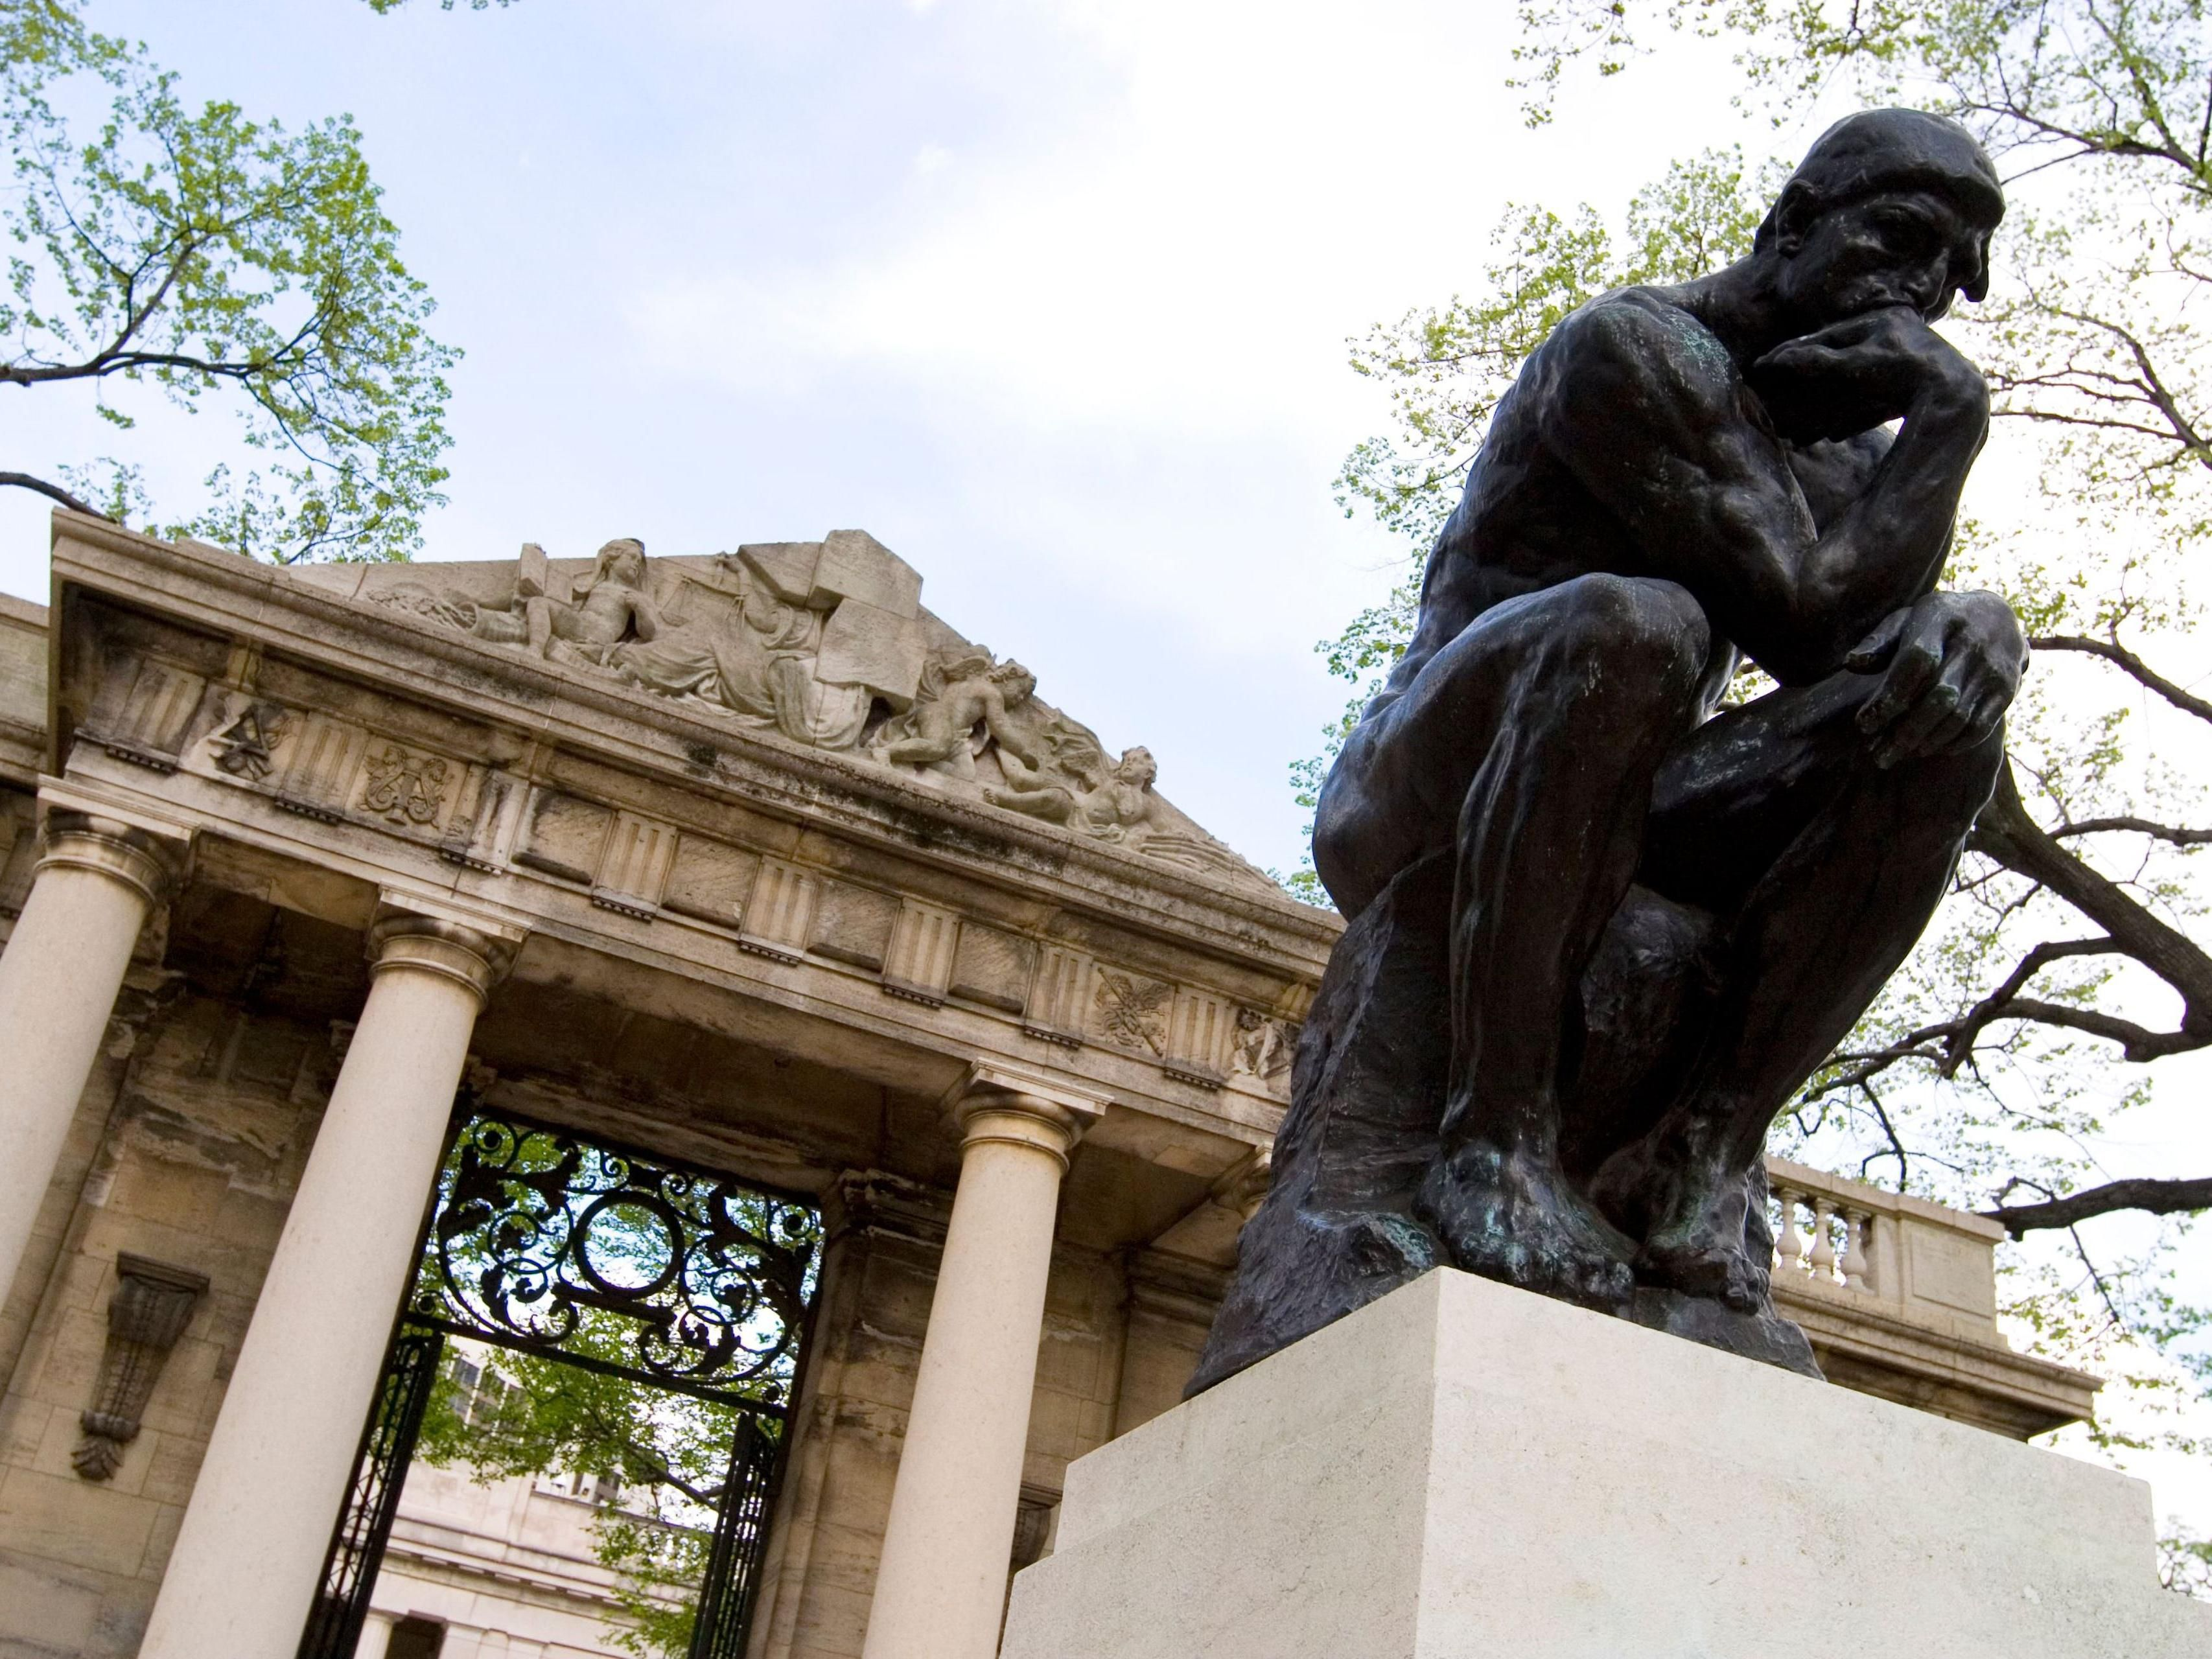 Rodin Museum is located on the Ben Franklin Parkway-10 min.